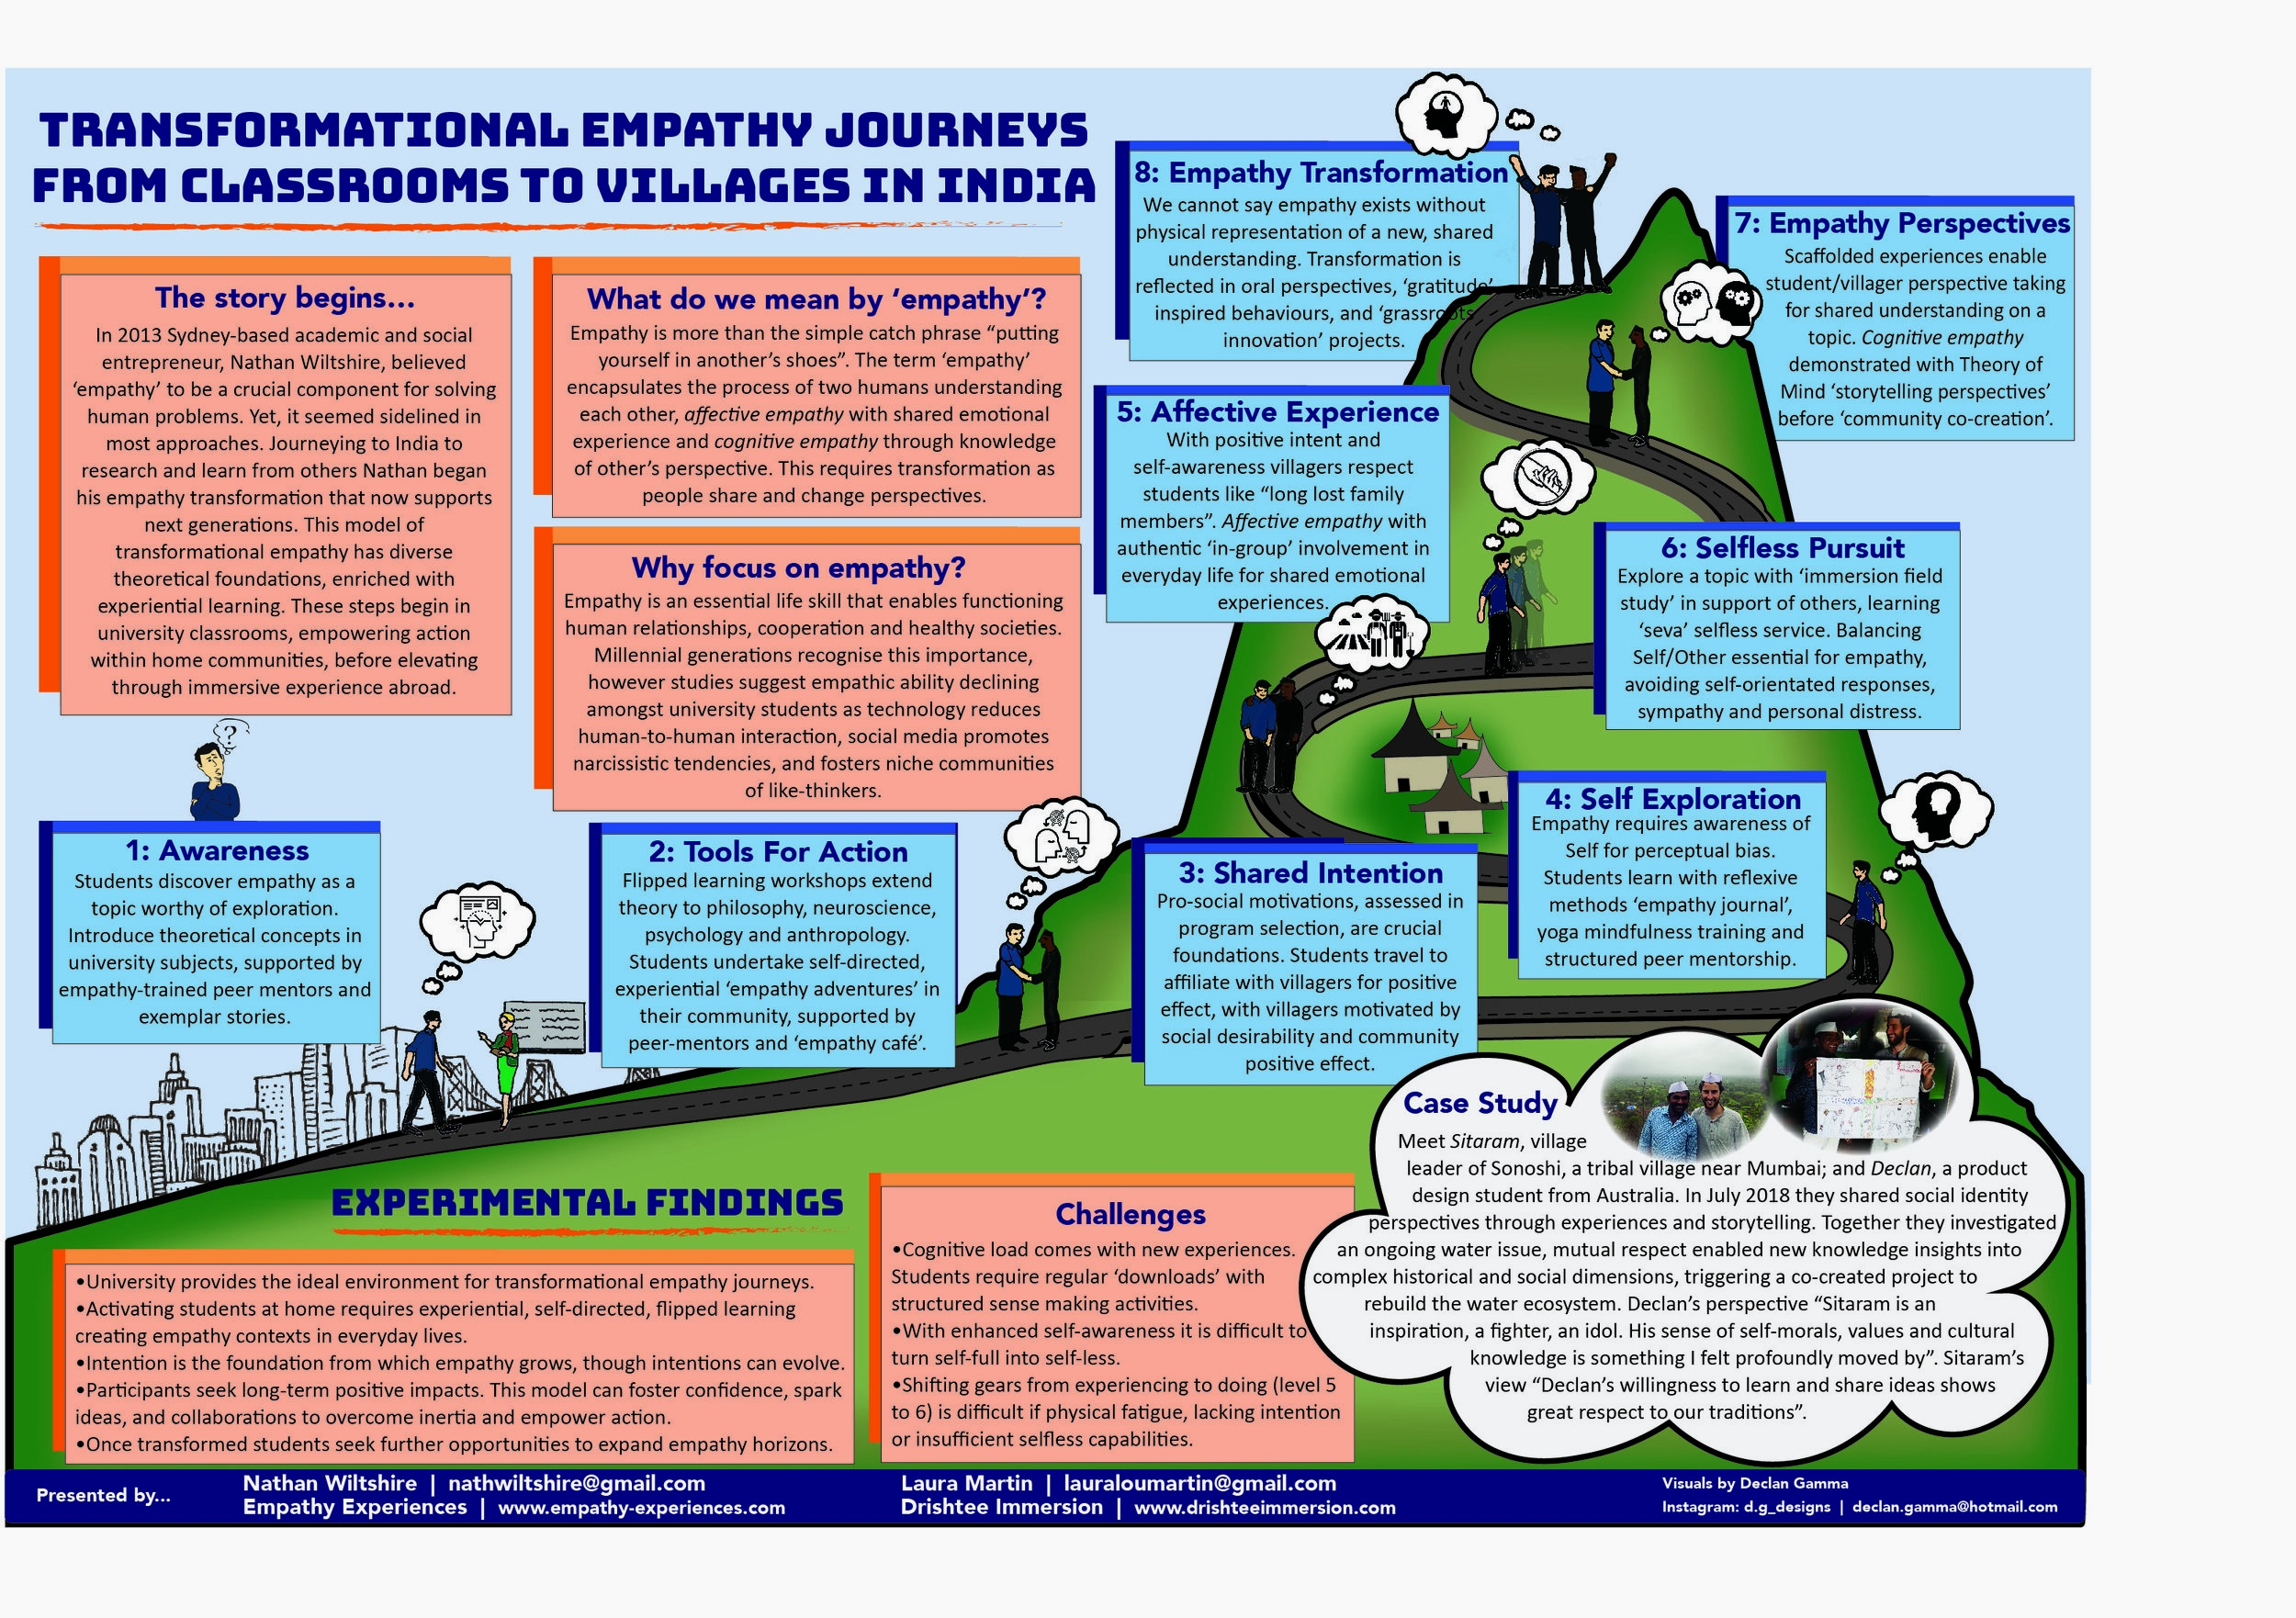 EAIE-Poster-Session-Transformational+empathy+journeys+from+classrooms+to+villages+in+India.jpg